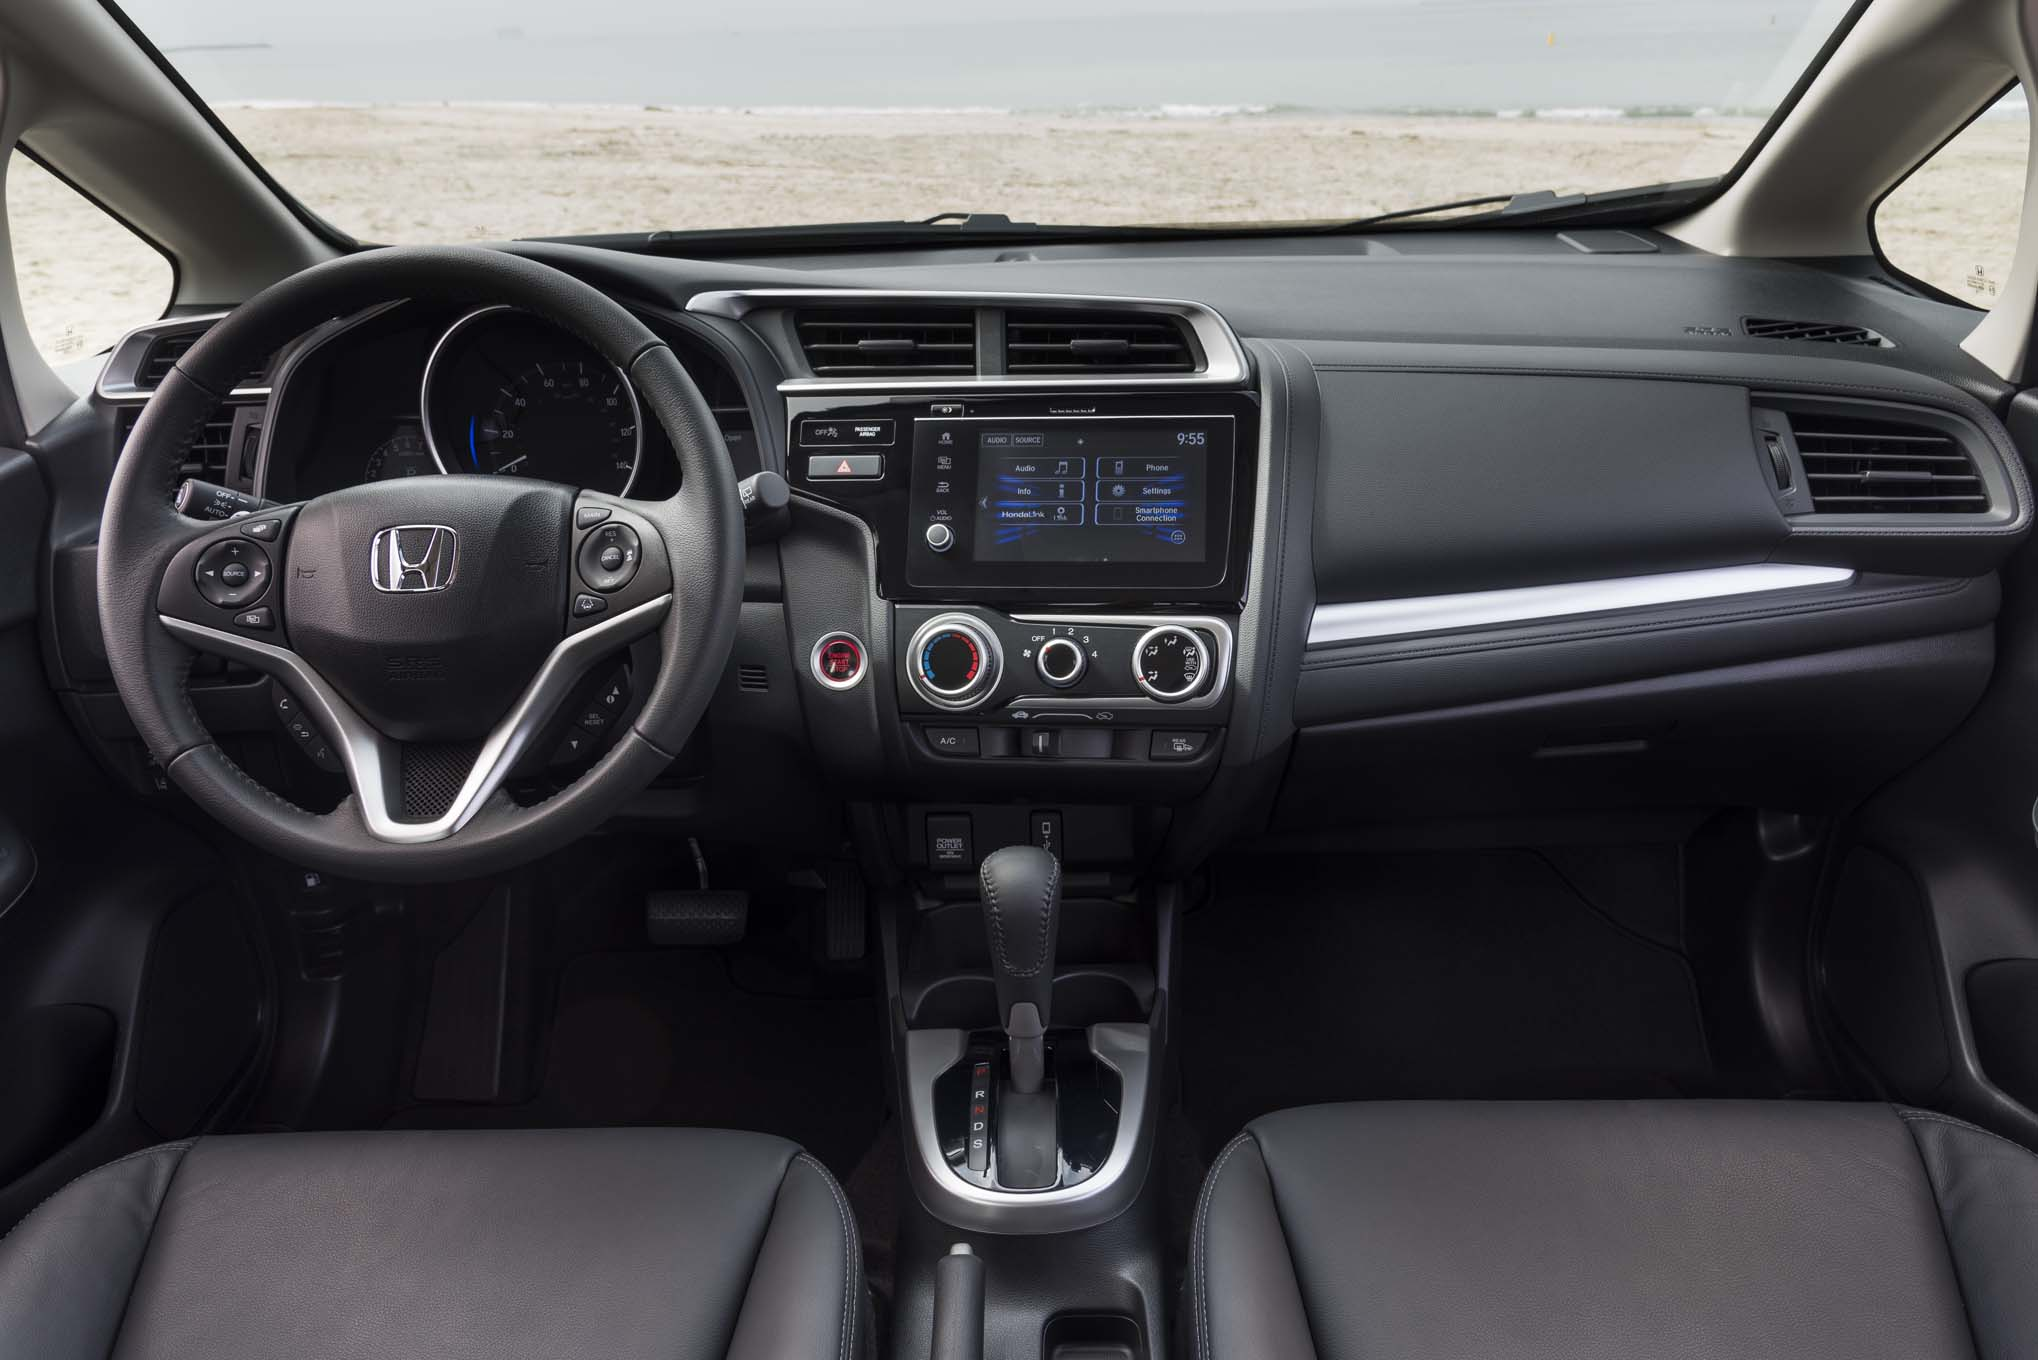 Honda Fit Interior View